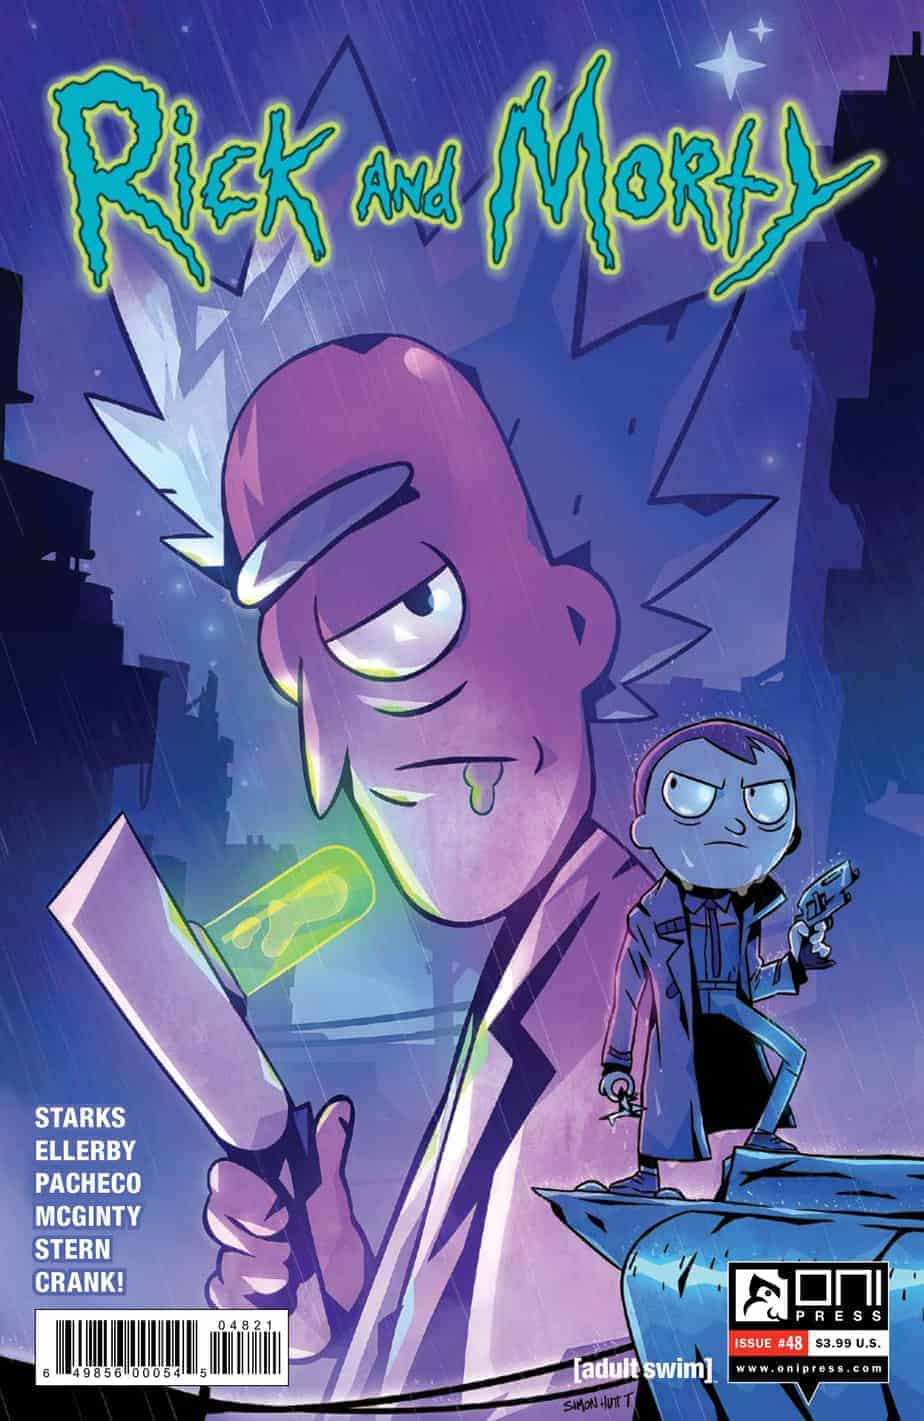 Rick and Morty™ #48 - Cover B